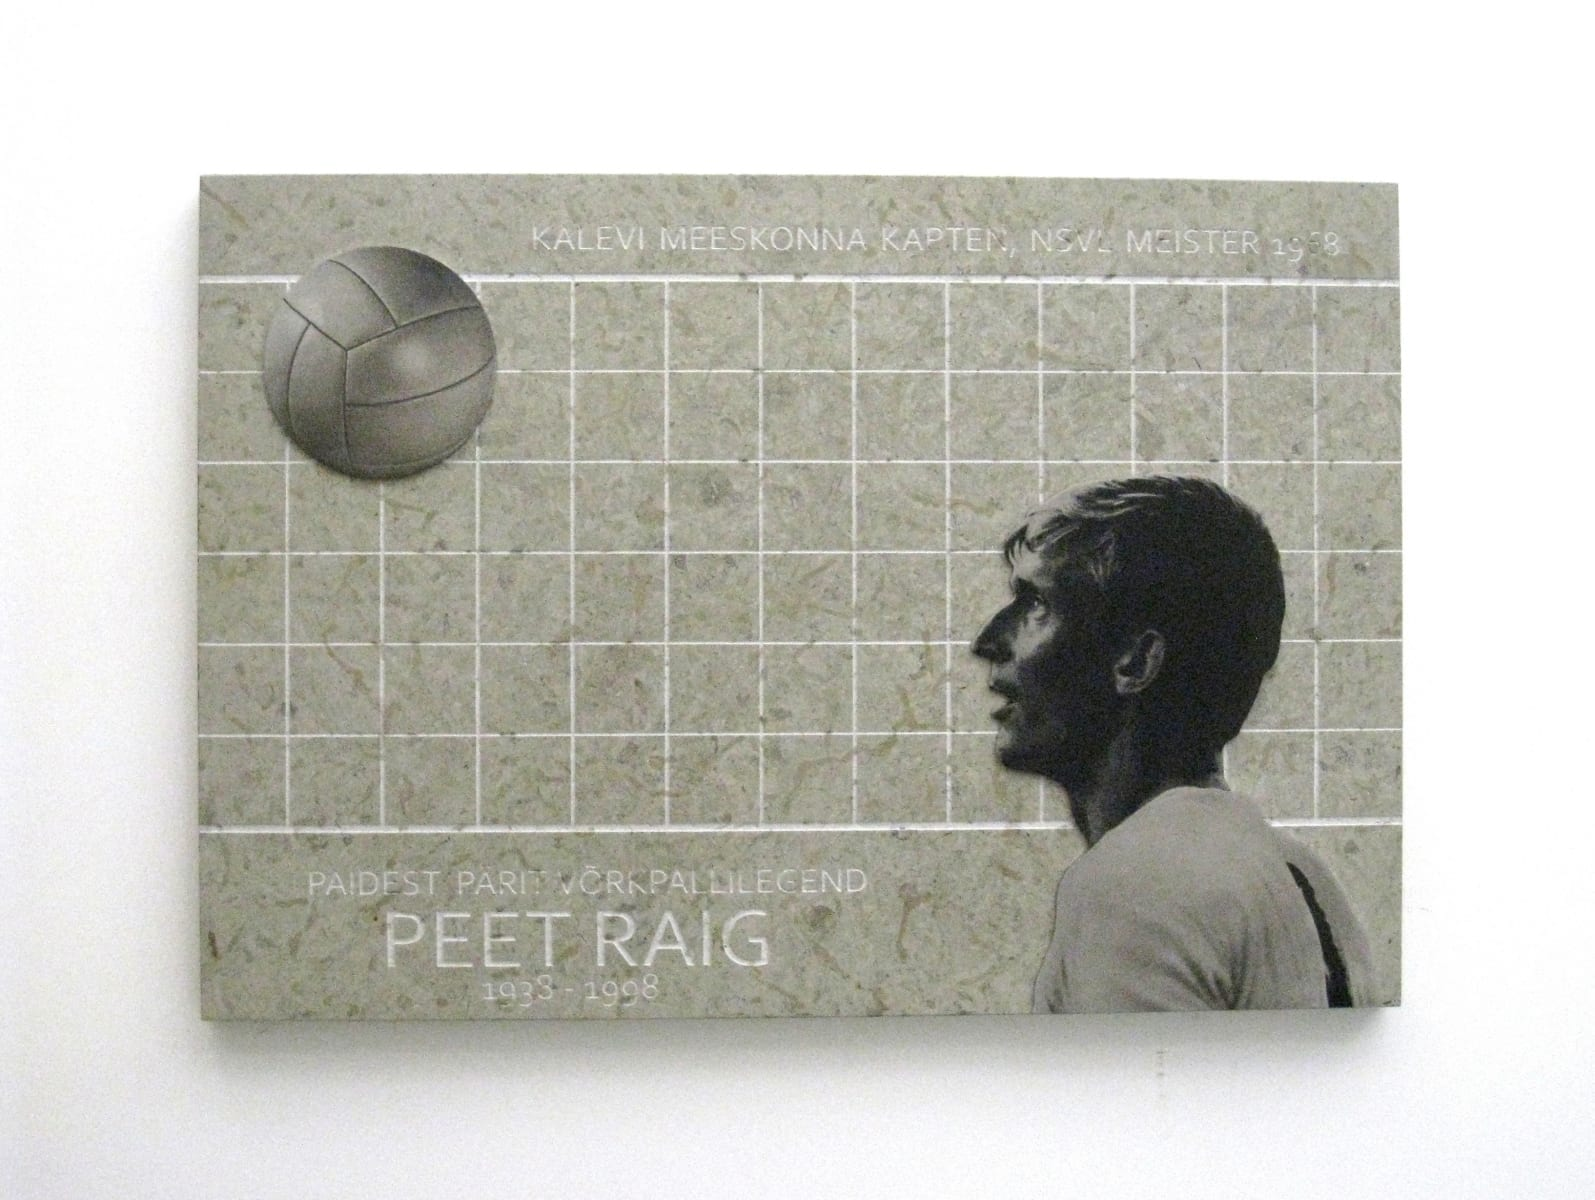 MÄLESTUSTAHVEL võrkpallur PEET RAIG´ile 2013 paekivi, lasergraveering roostevabal terasel 80 x 115 cm - Paide, Eesti <br/> A memorial tablet to a volleball player PEER RAIG 2013 limestone, lazer engraving on stainless steel 80 x 115 cm - Paide, Estonia